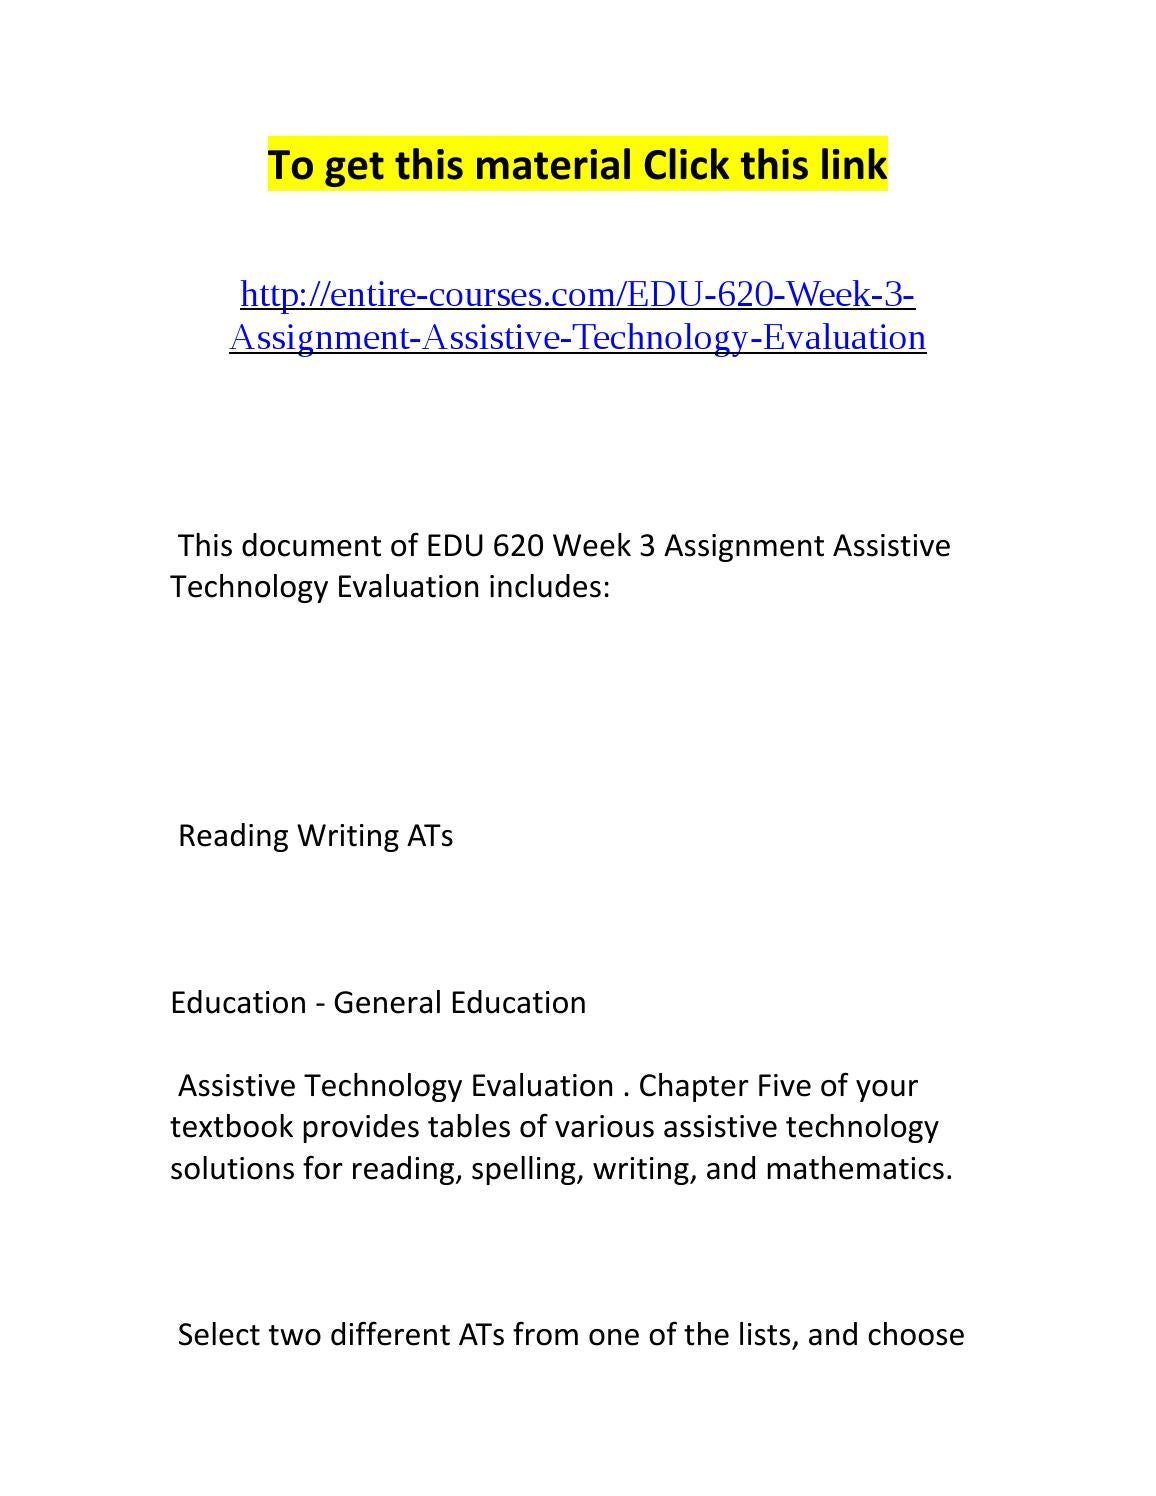 edu 620 week 3 assignment assistive Edu 620 week 3 assignment udl/cast instructional plan analysis (2 papers) this tutorial was purchased 5 times & rated a+ by student like you this tutorial contains 2 papers udl/cast instructional plan analysis this assignment provides the opportunity for you to apply the principles of universal design for&.